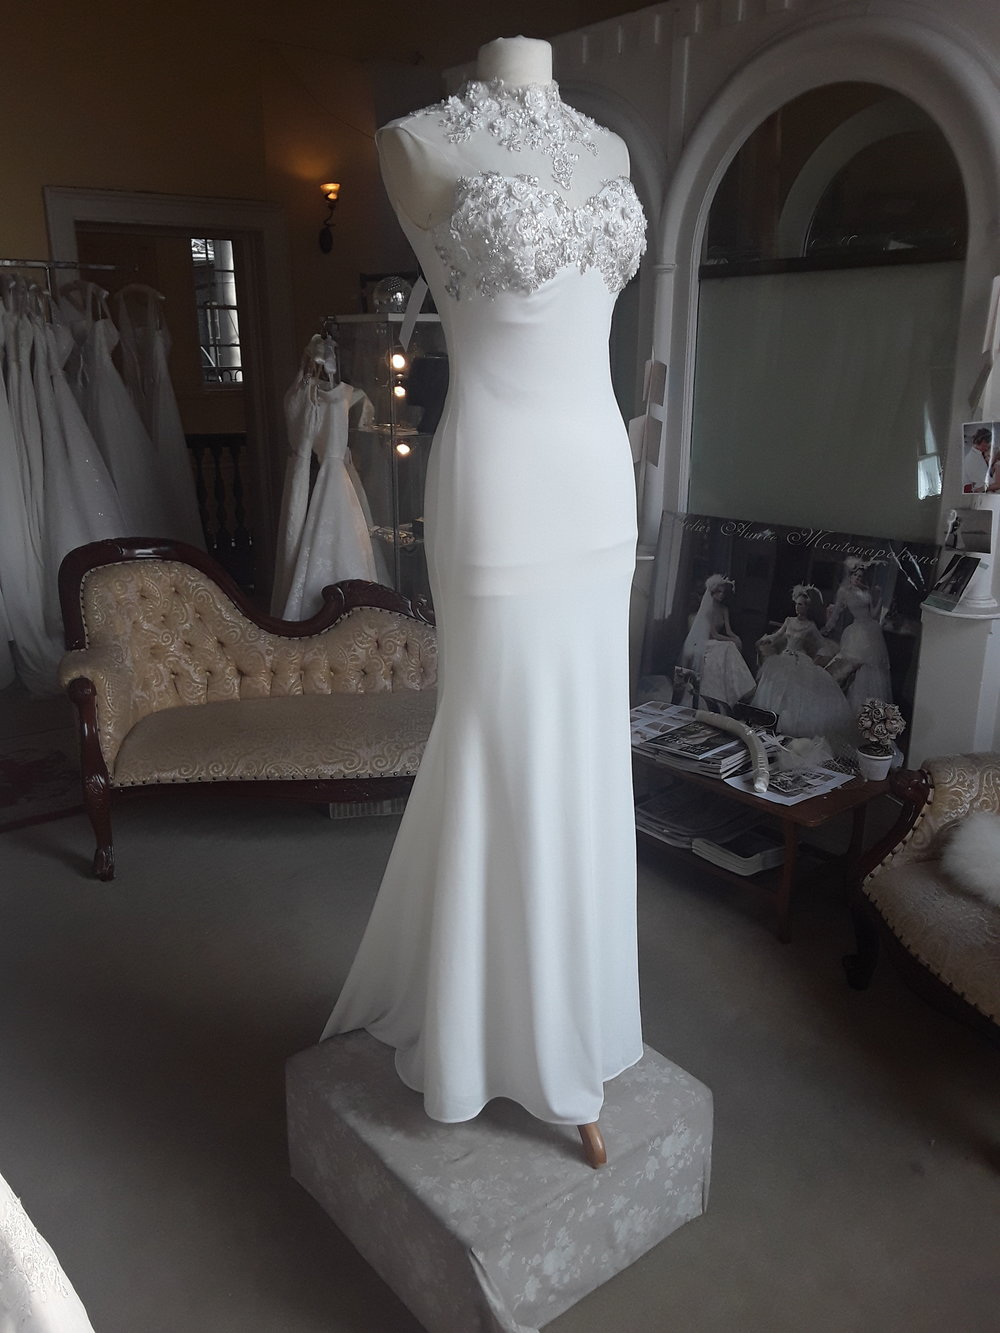 GINO CERRUTI CHIFFON MERMAID DRESS WITH EMBELISHED NECK DETAIL  COLOUR: IVORY  SIZE: MEDIUM (8/10)  WAS €995 NOW €€550  REF: E125